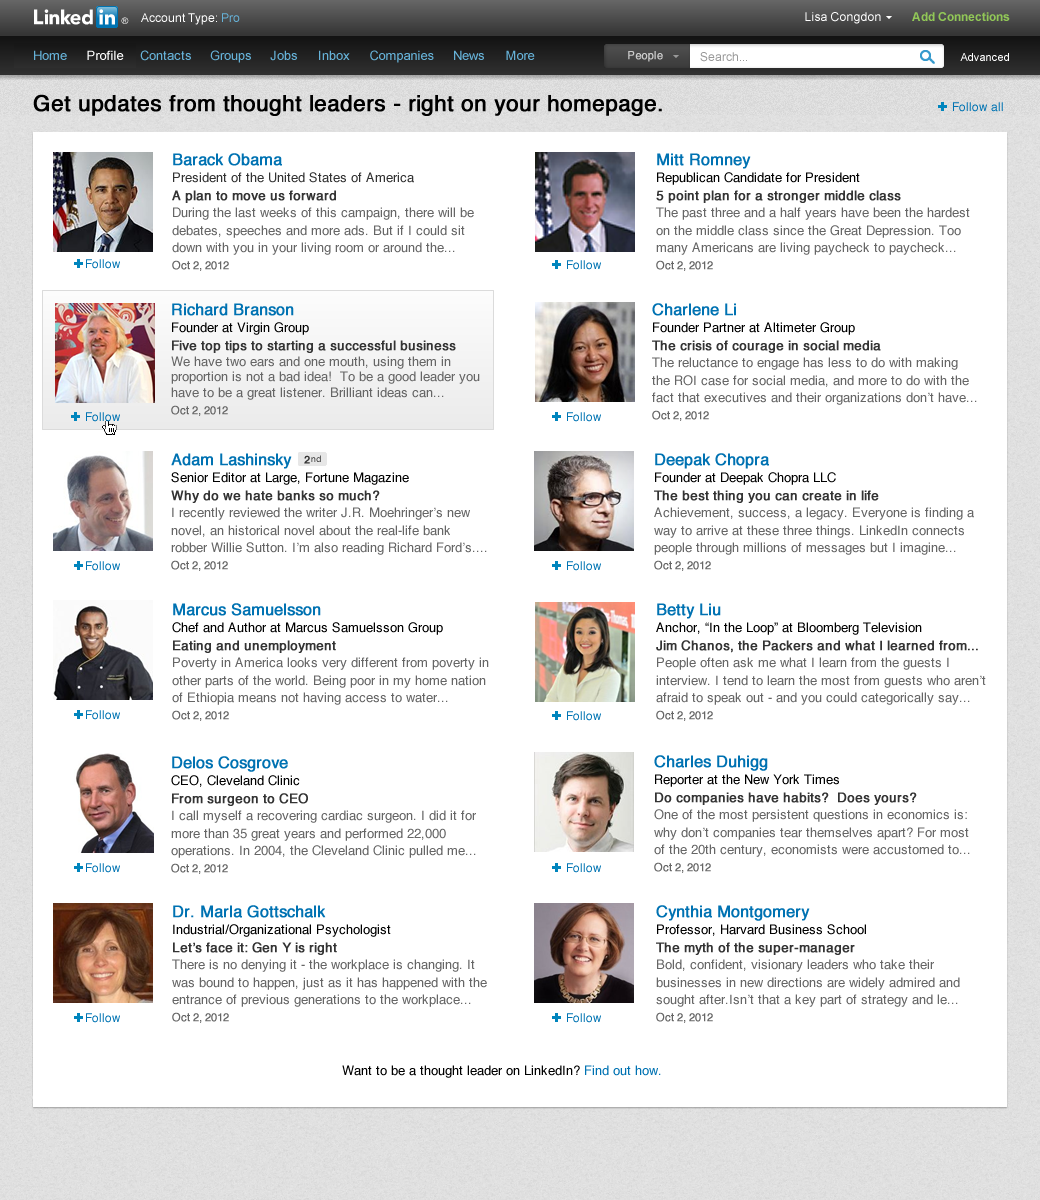 LinkedIn Allows You To Follow Key Influencers On The Network